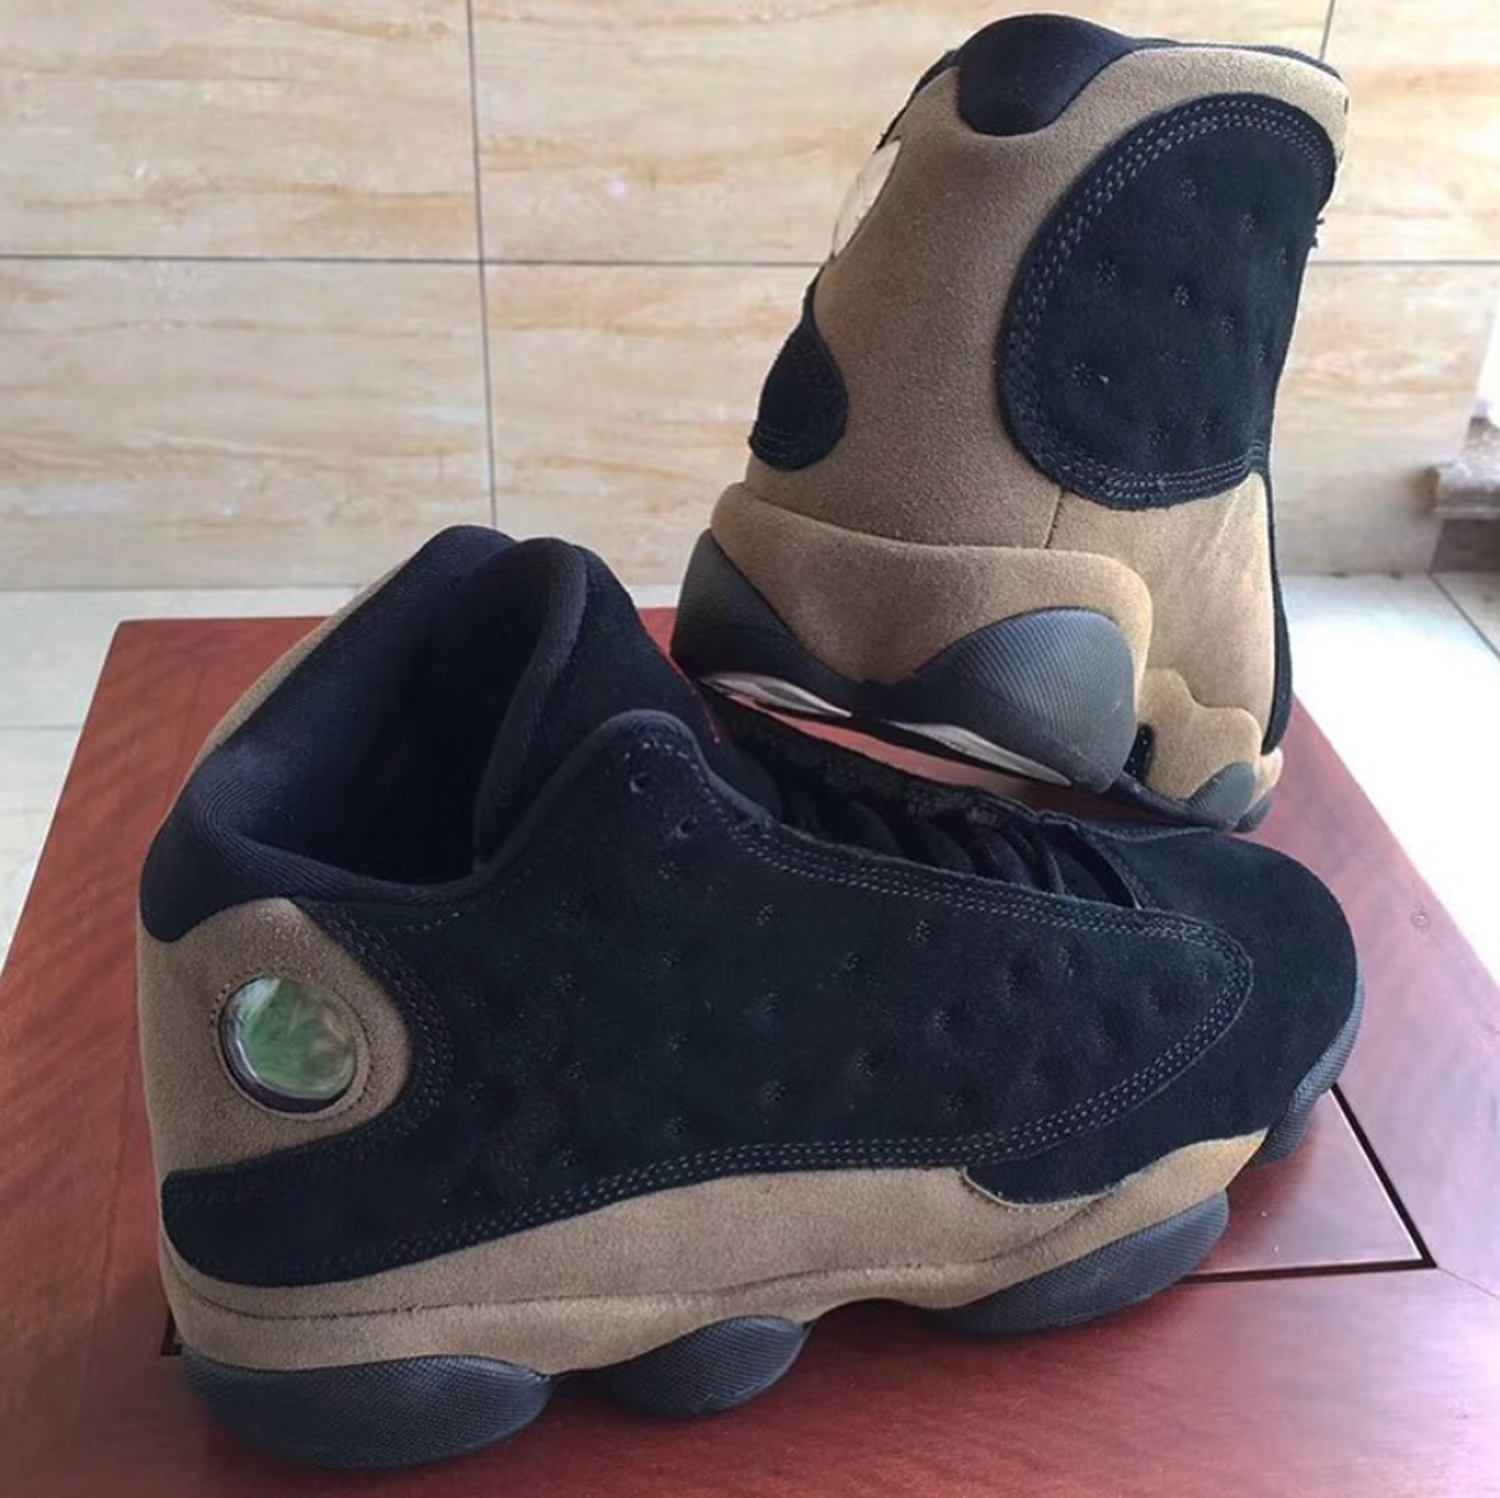 buy popular 7278b 93158 Another Look at the Air Jordan 13 'Olive' Shows Suede Uppers ...